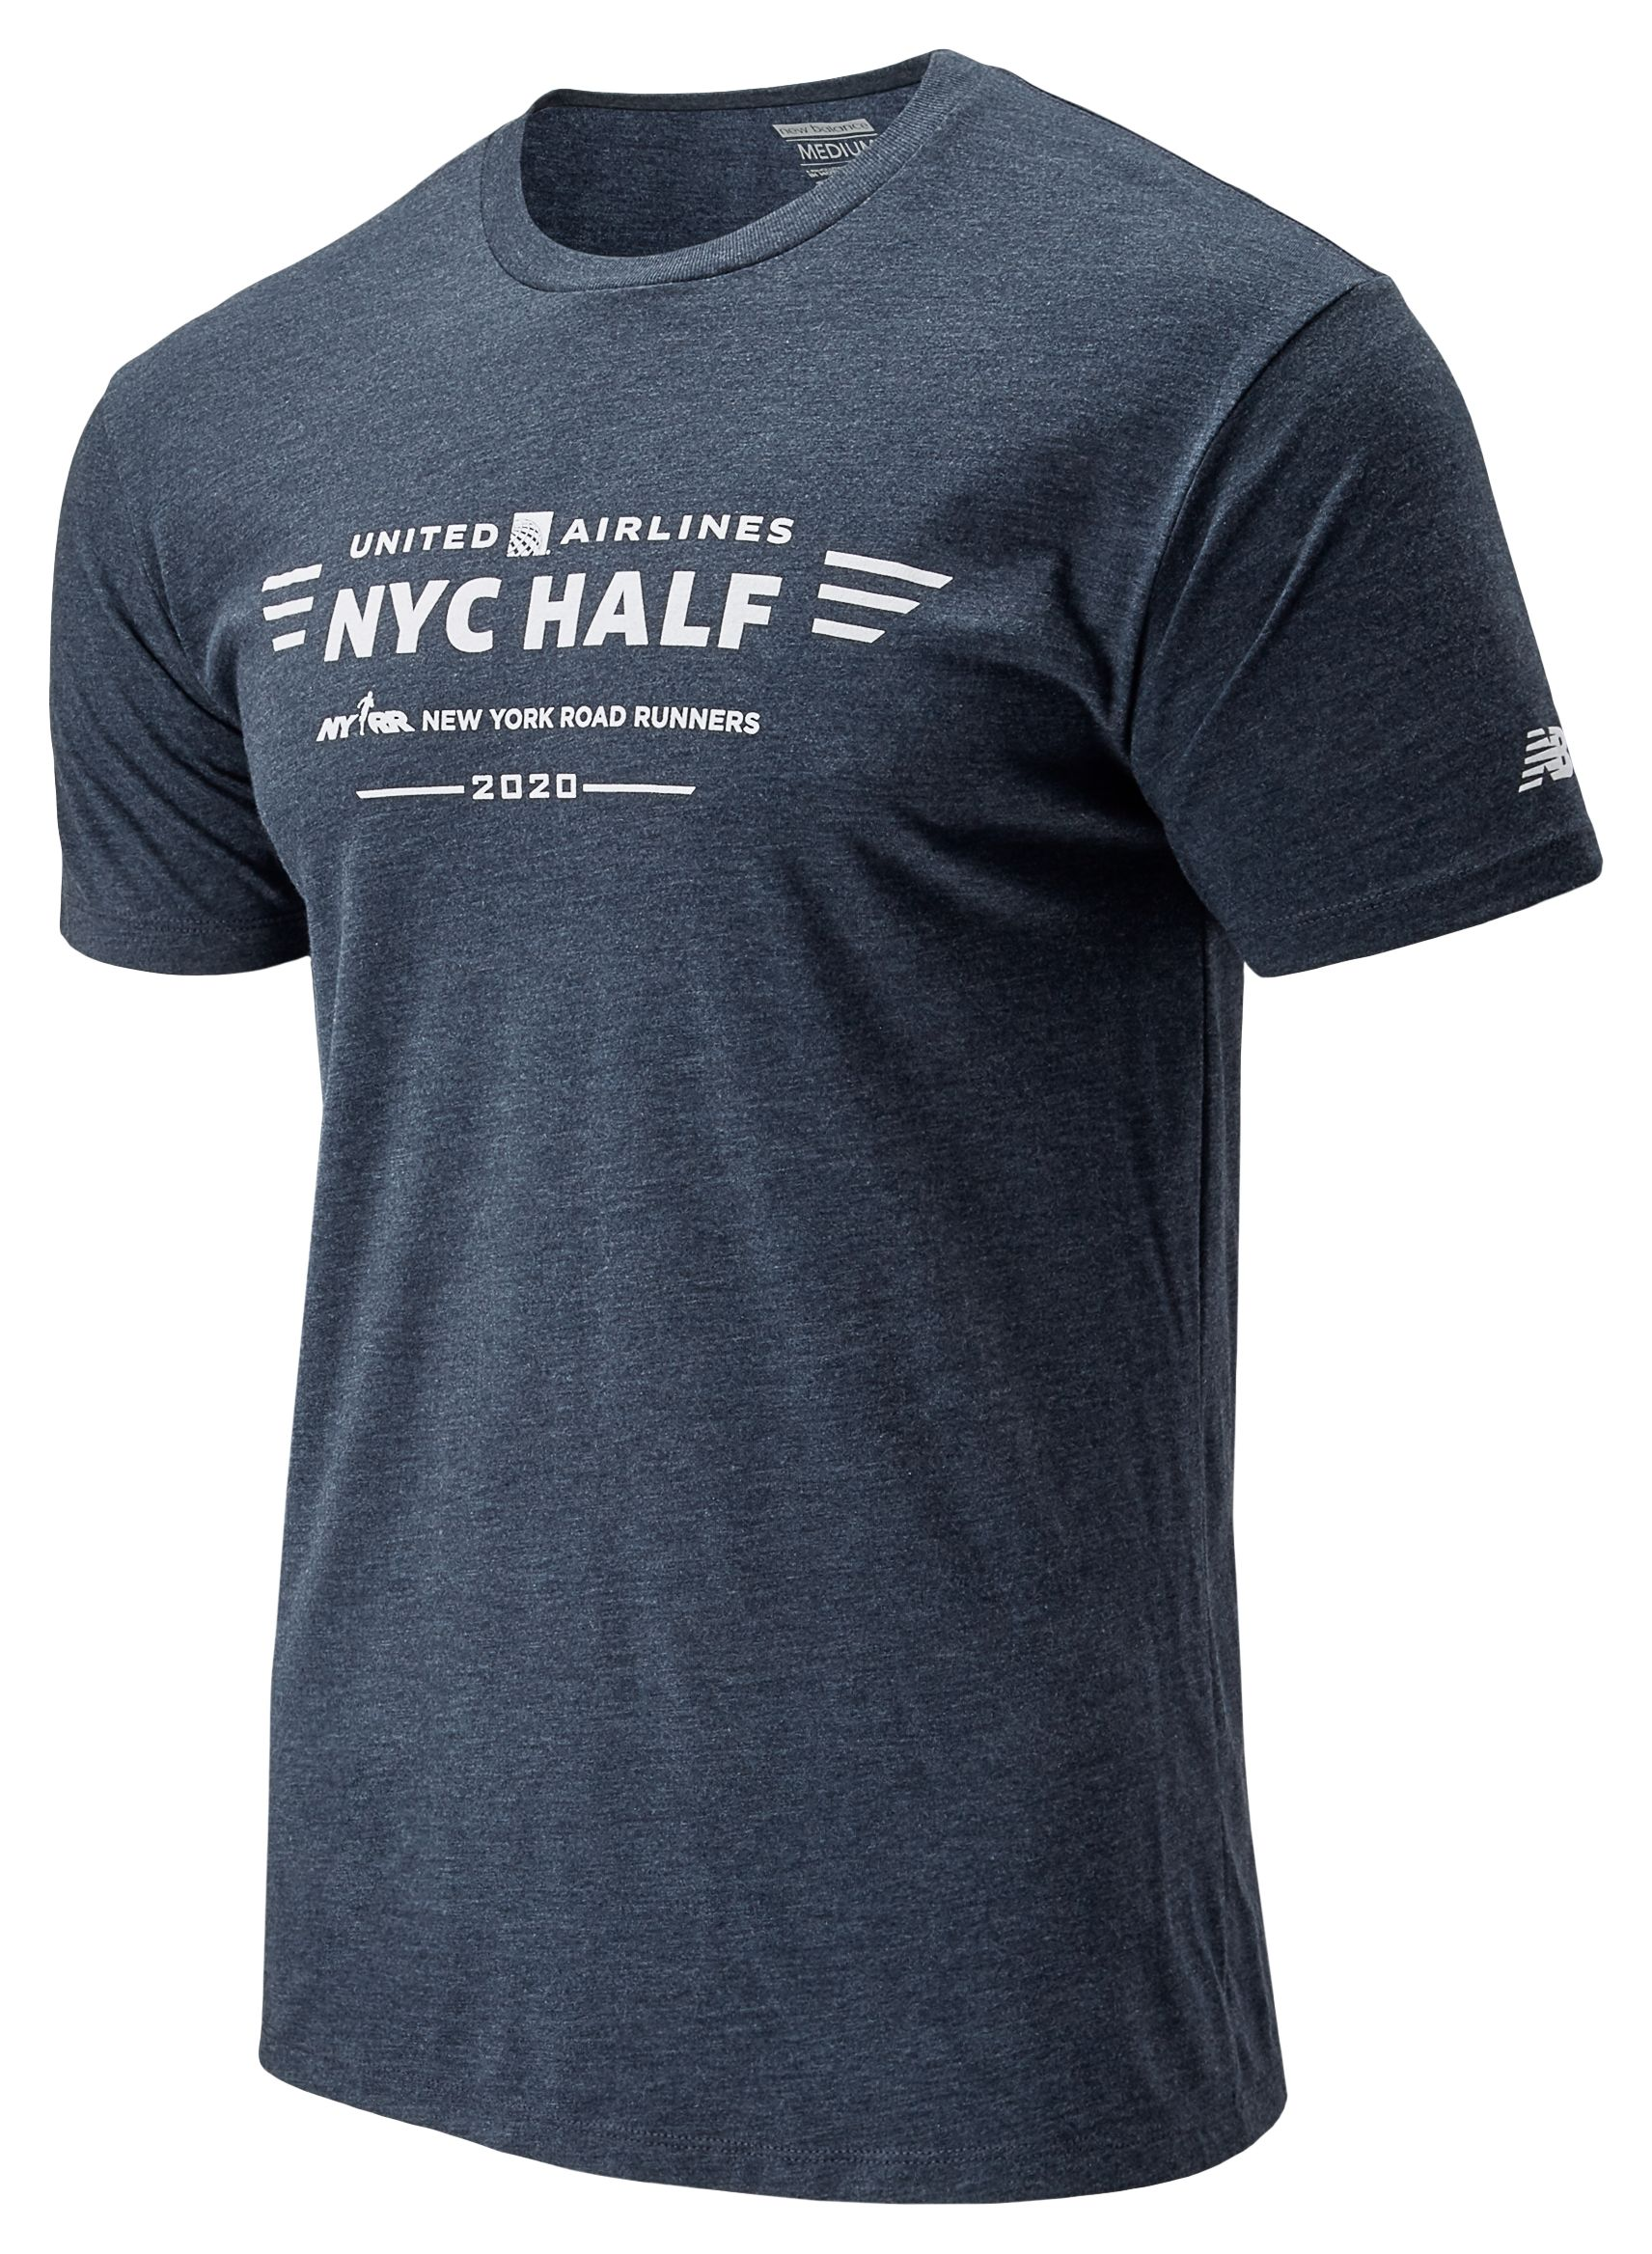 Men's 2020 United Airlines Half Logo Tee